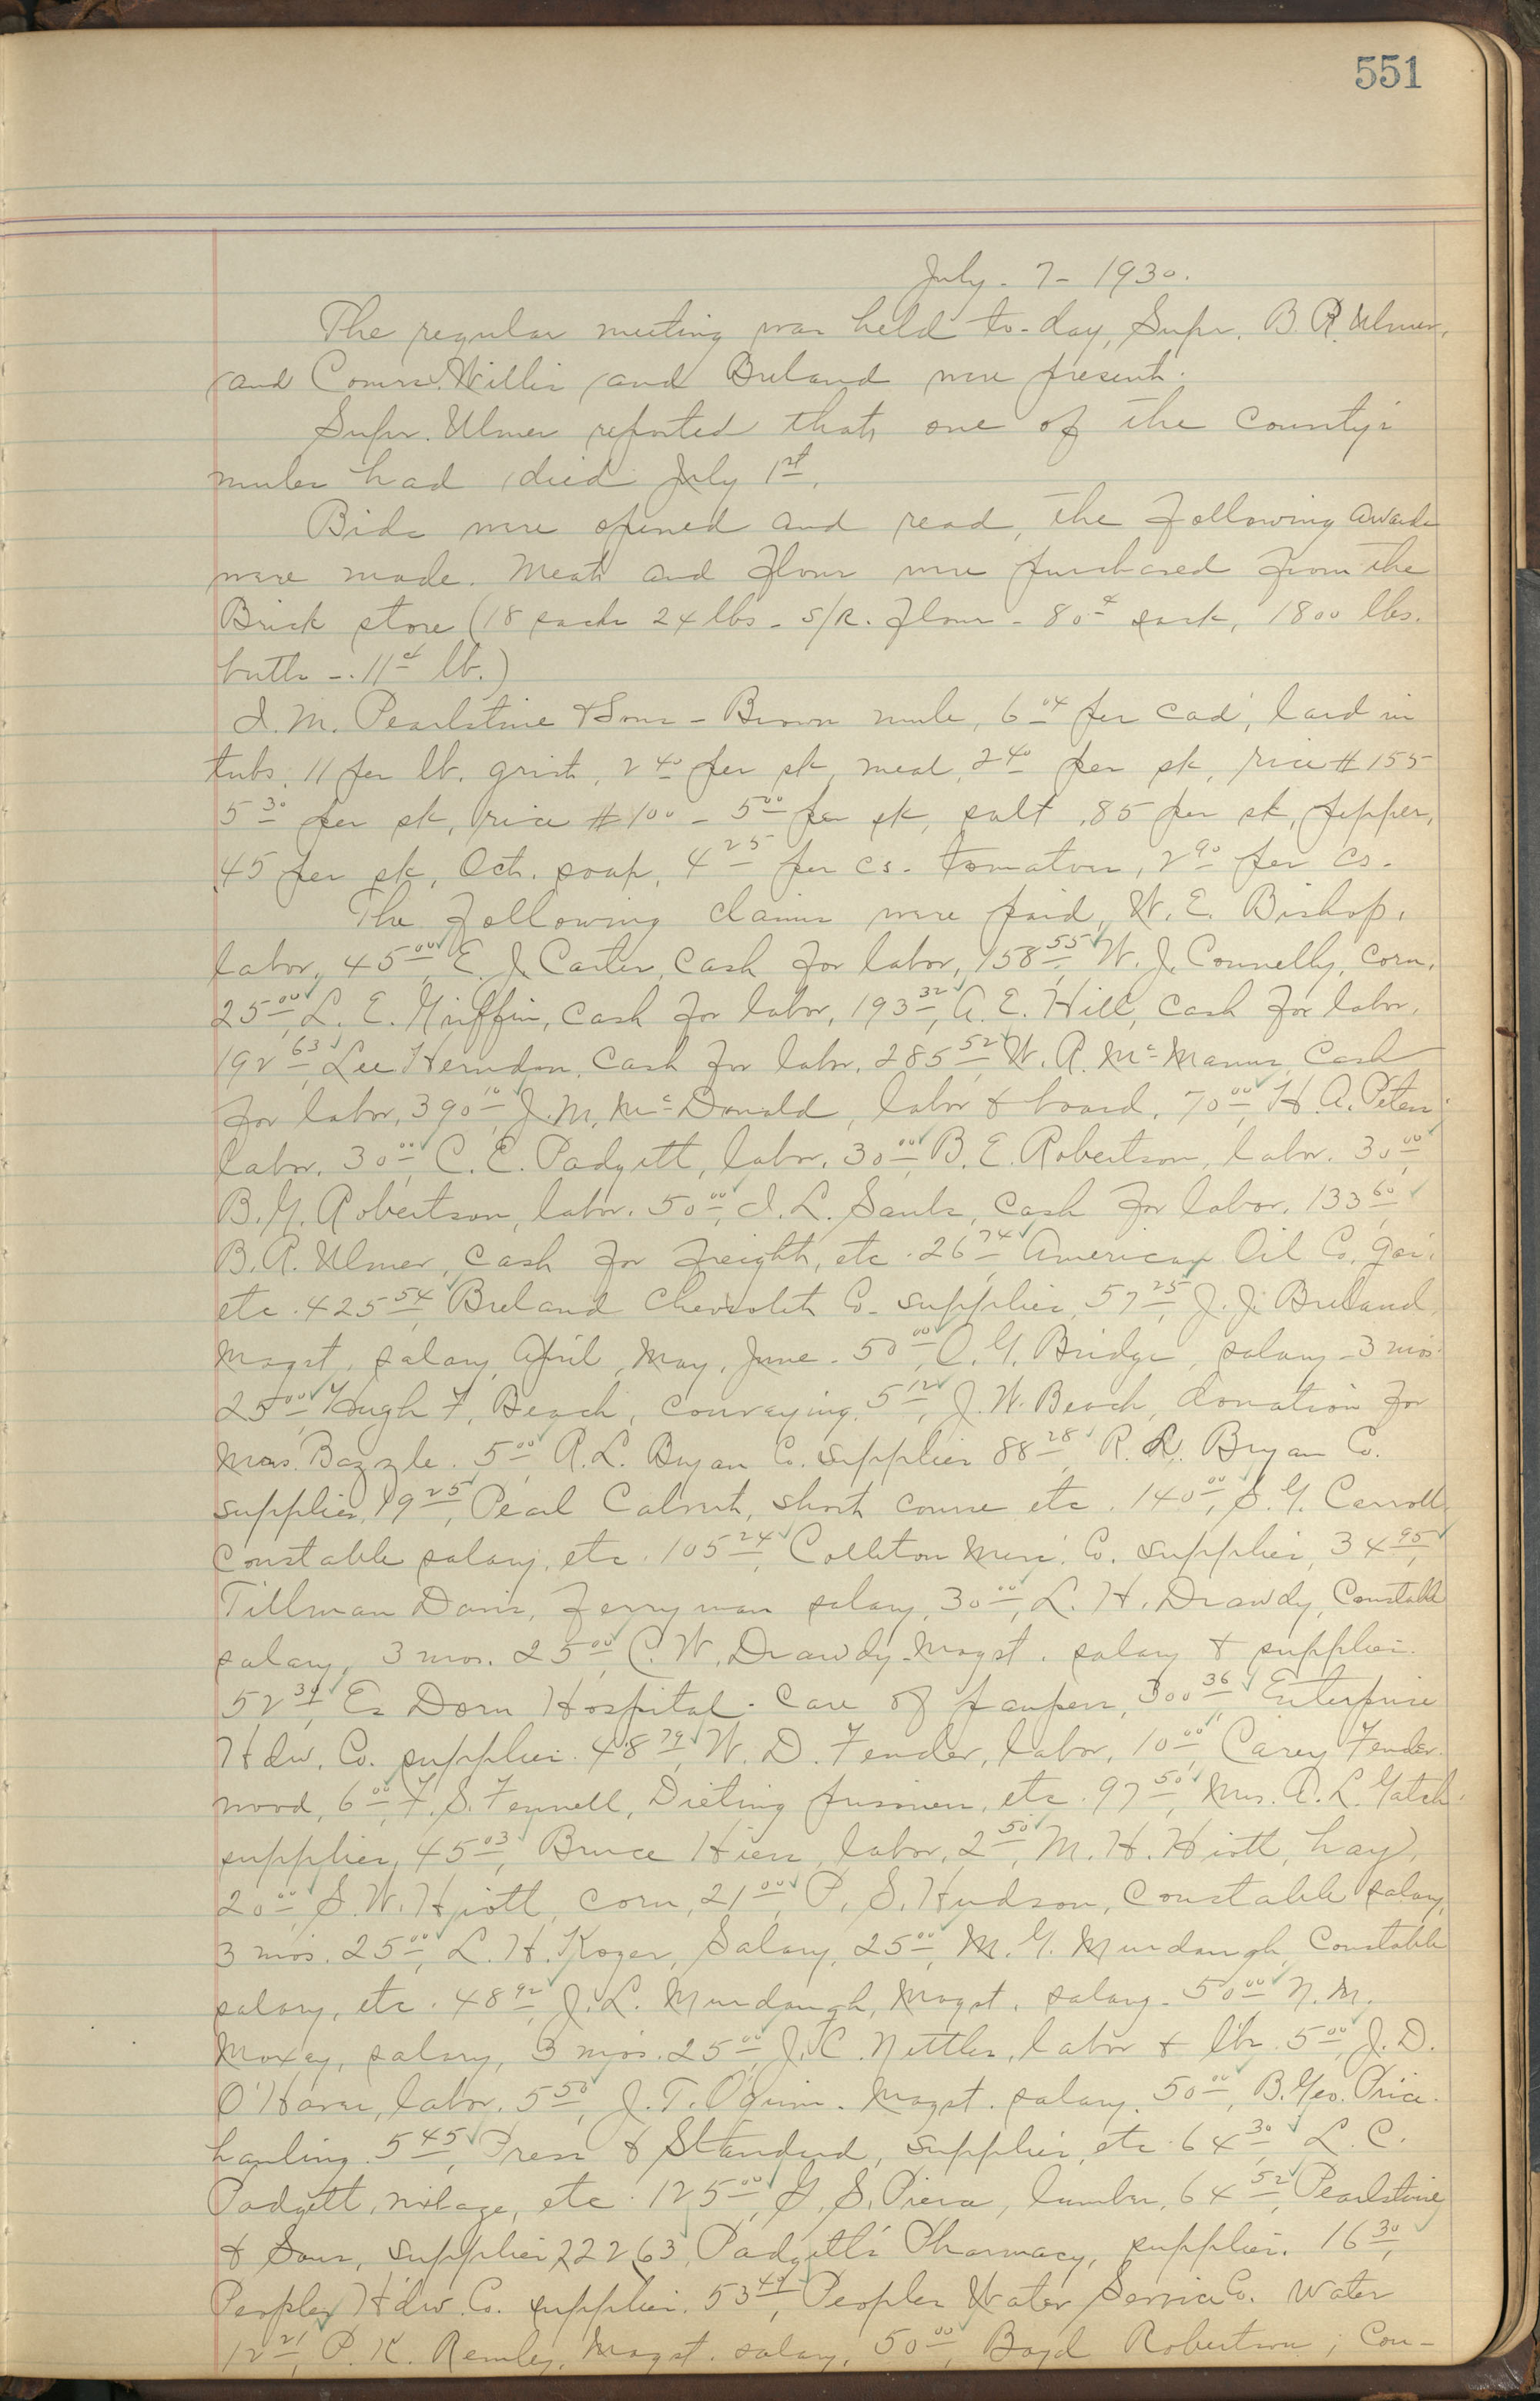 Colleton County Highway Commission Ledger, Page 551